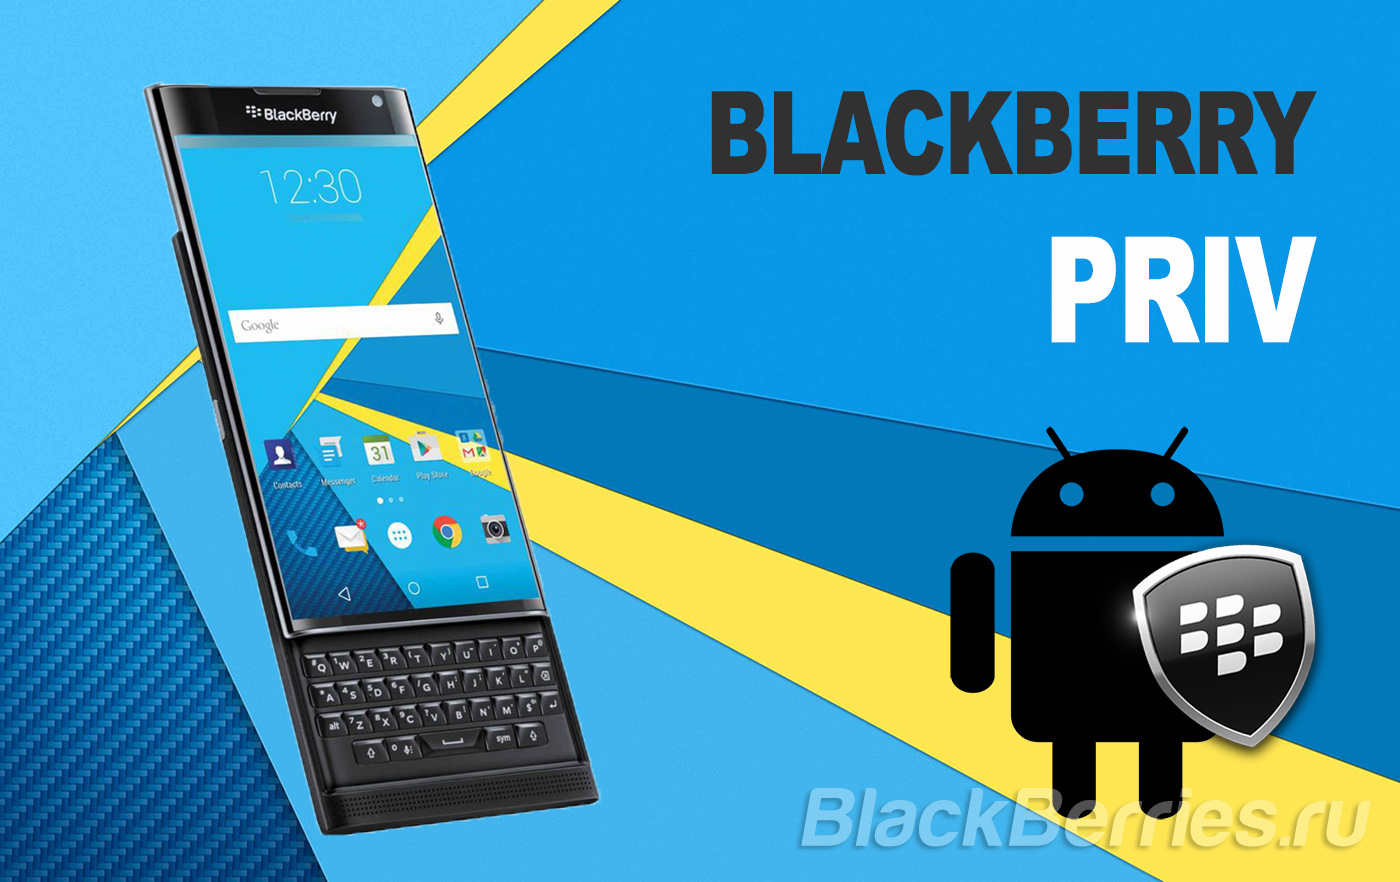 WinPhone Data Transfer: Blackberry Android Phones Listed